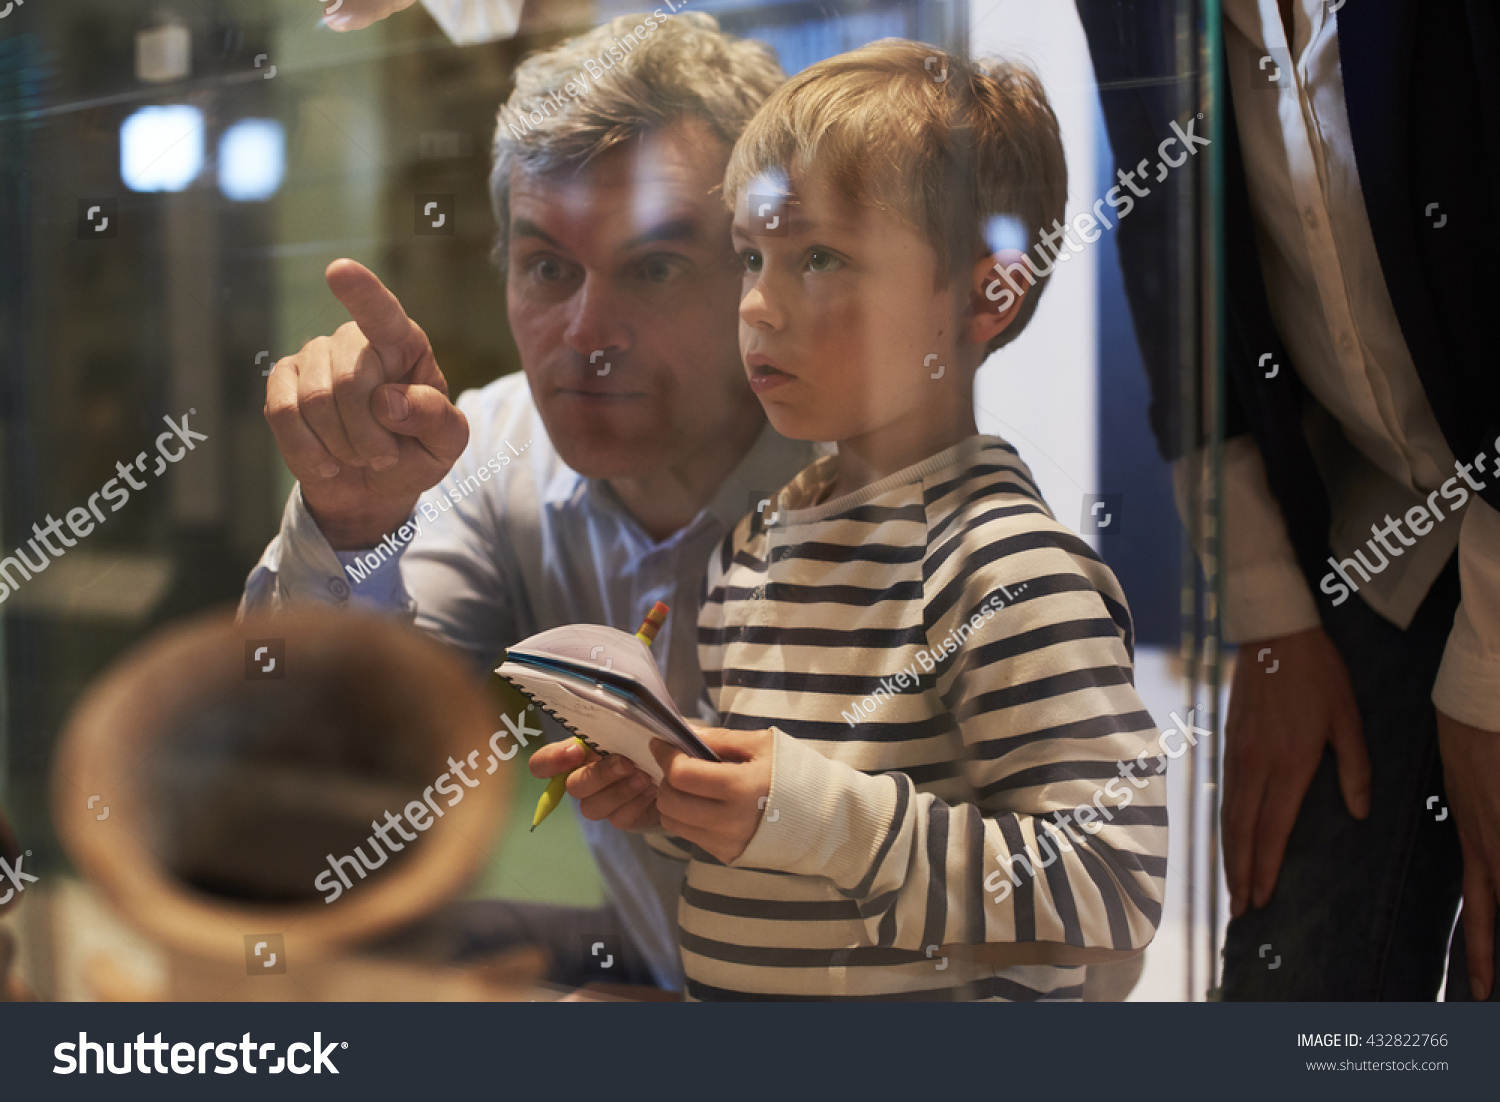 Father And Son Look At Artifacts In Case On Trip To Museum #432822766